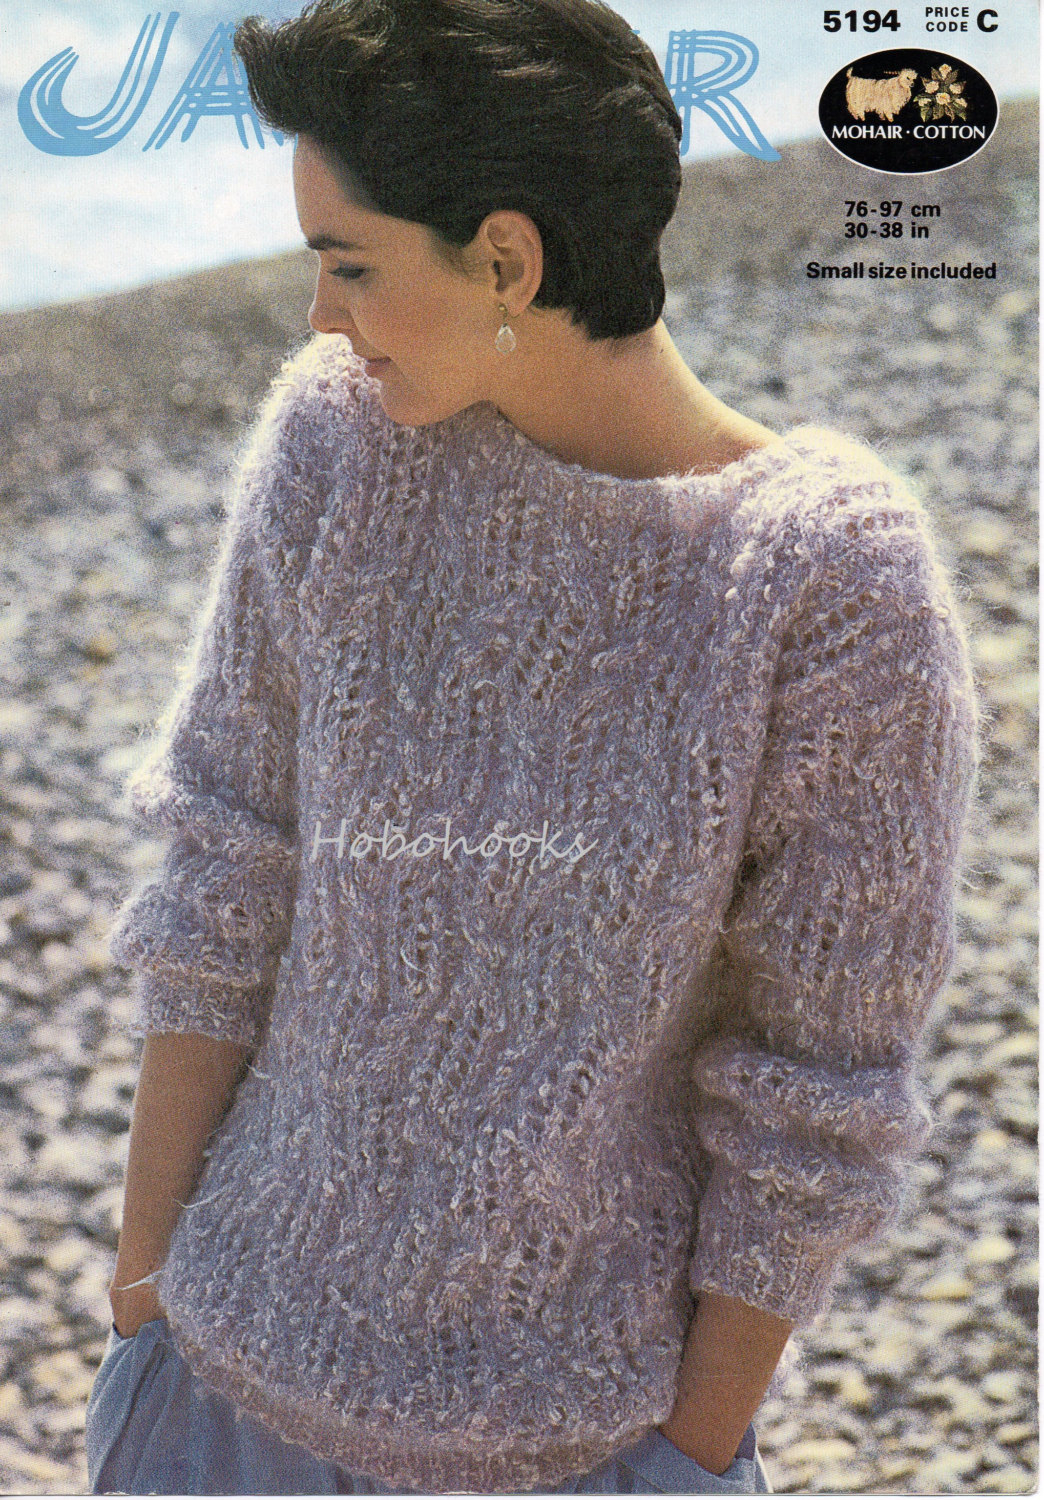 Mohair Knitting Patterns Free Sweaters Mohair Knitting Patterns Crochet And Knit